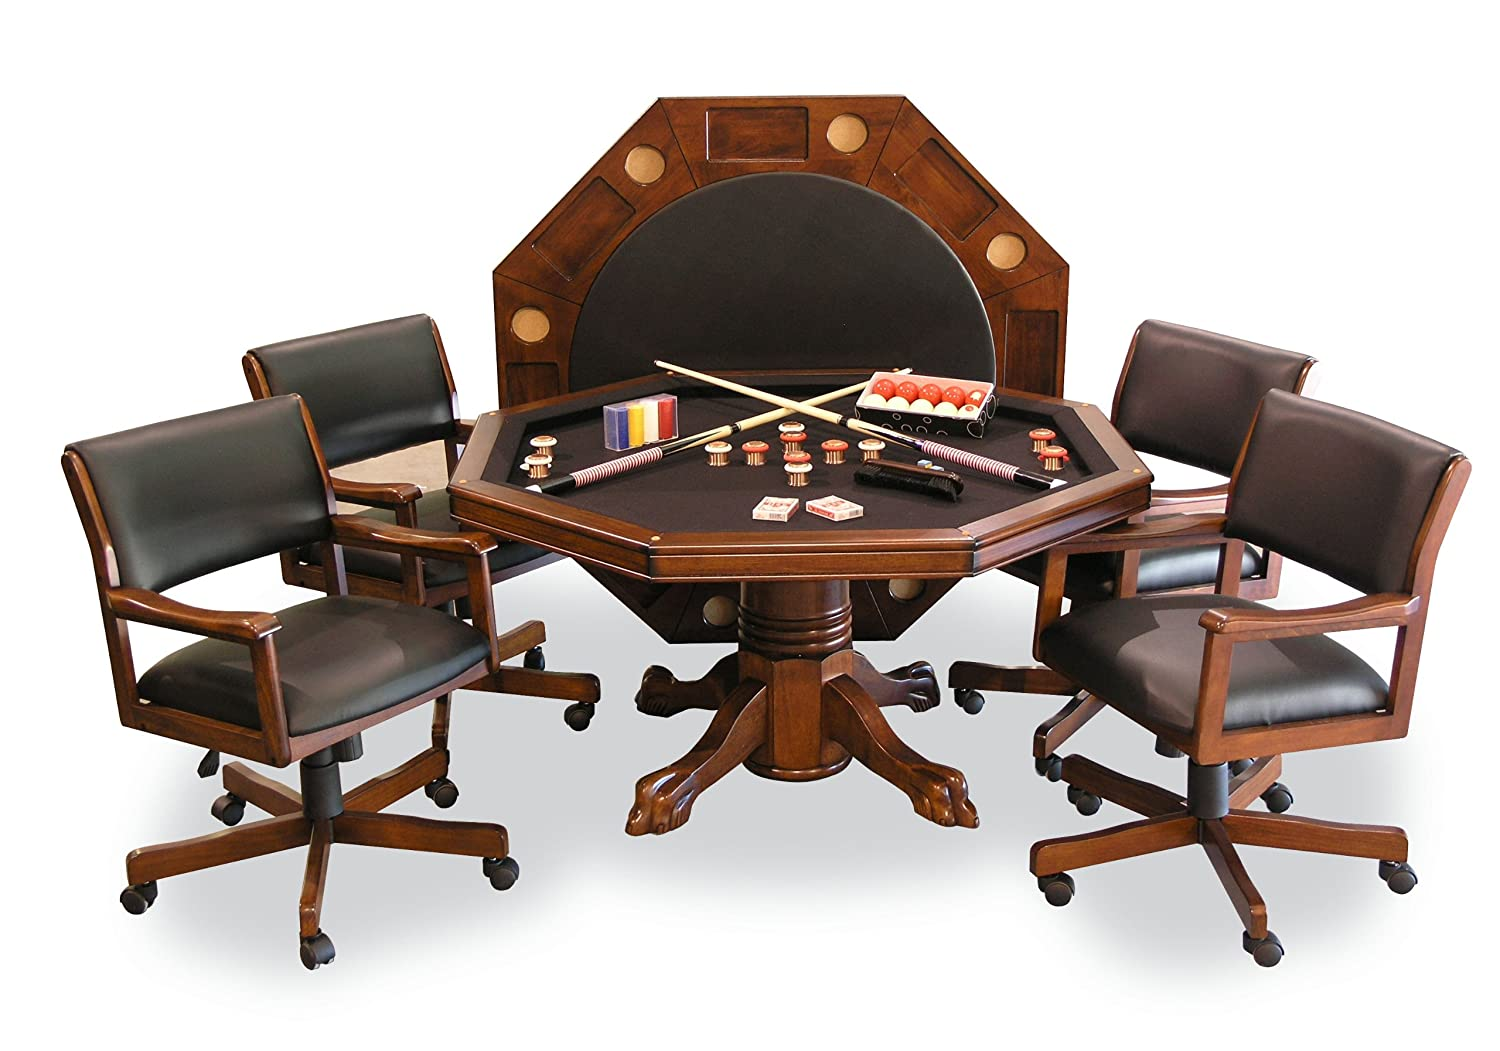 Best Rated Poker Dining Table Set cover image